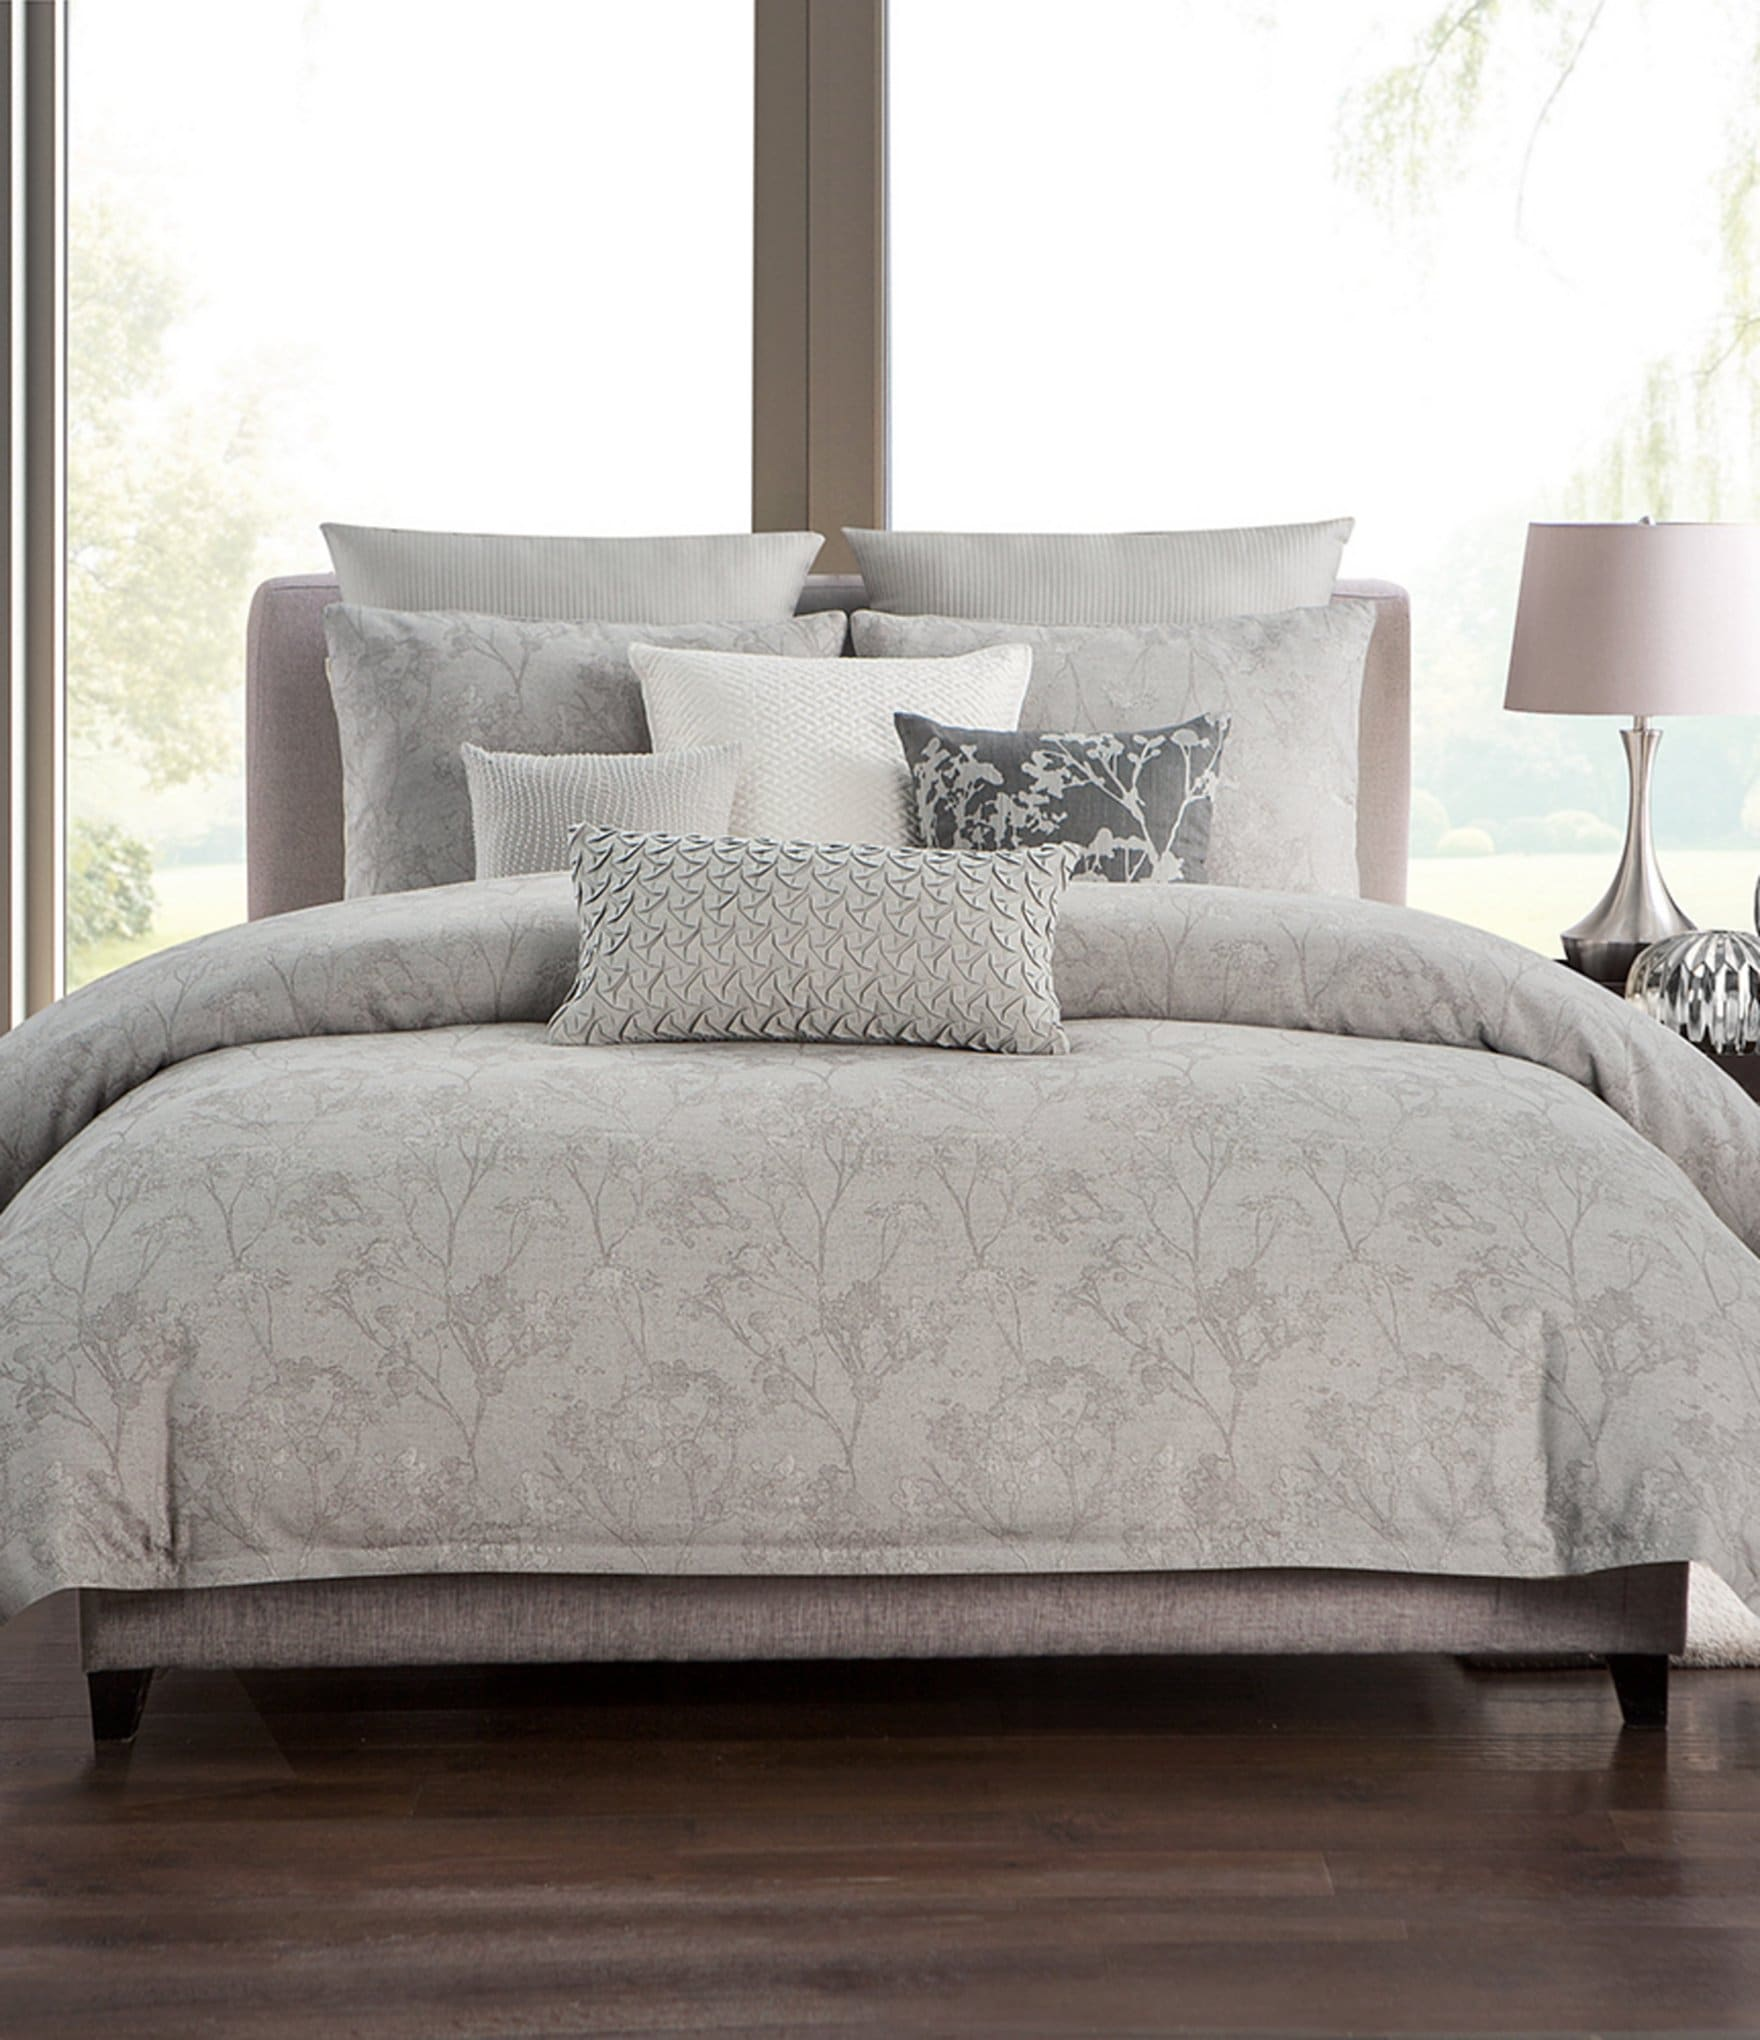 Highline Bedding Co Adelais Floral Comforter Mini Set